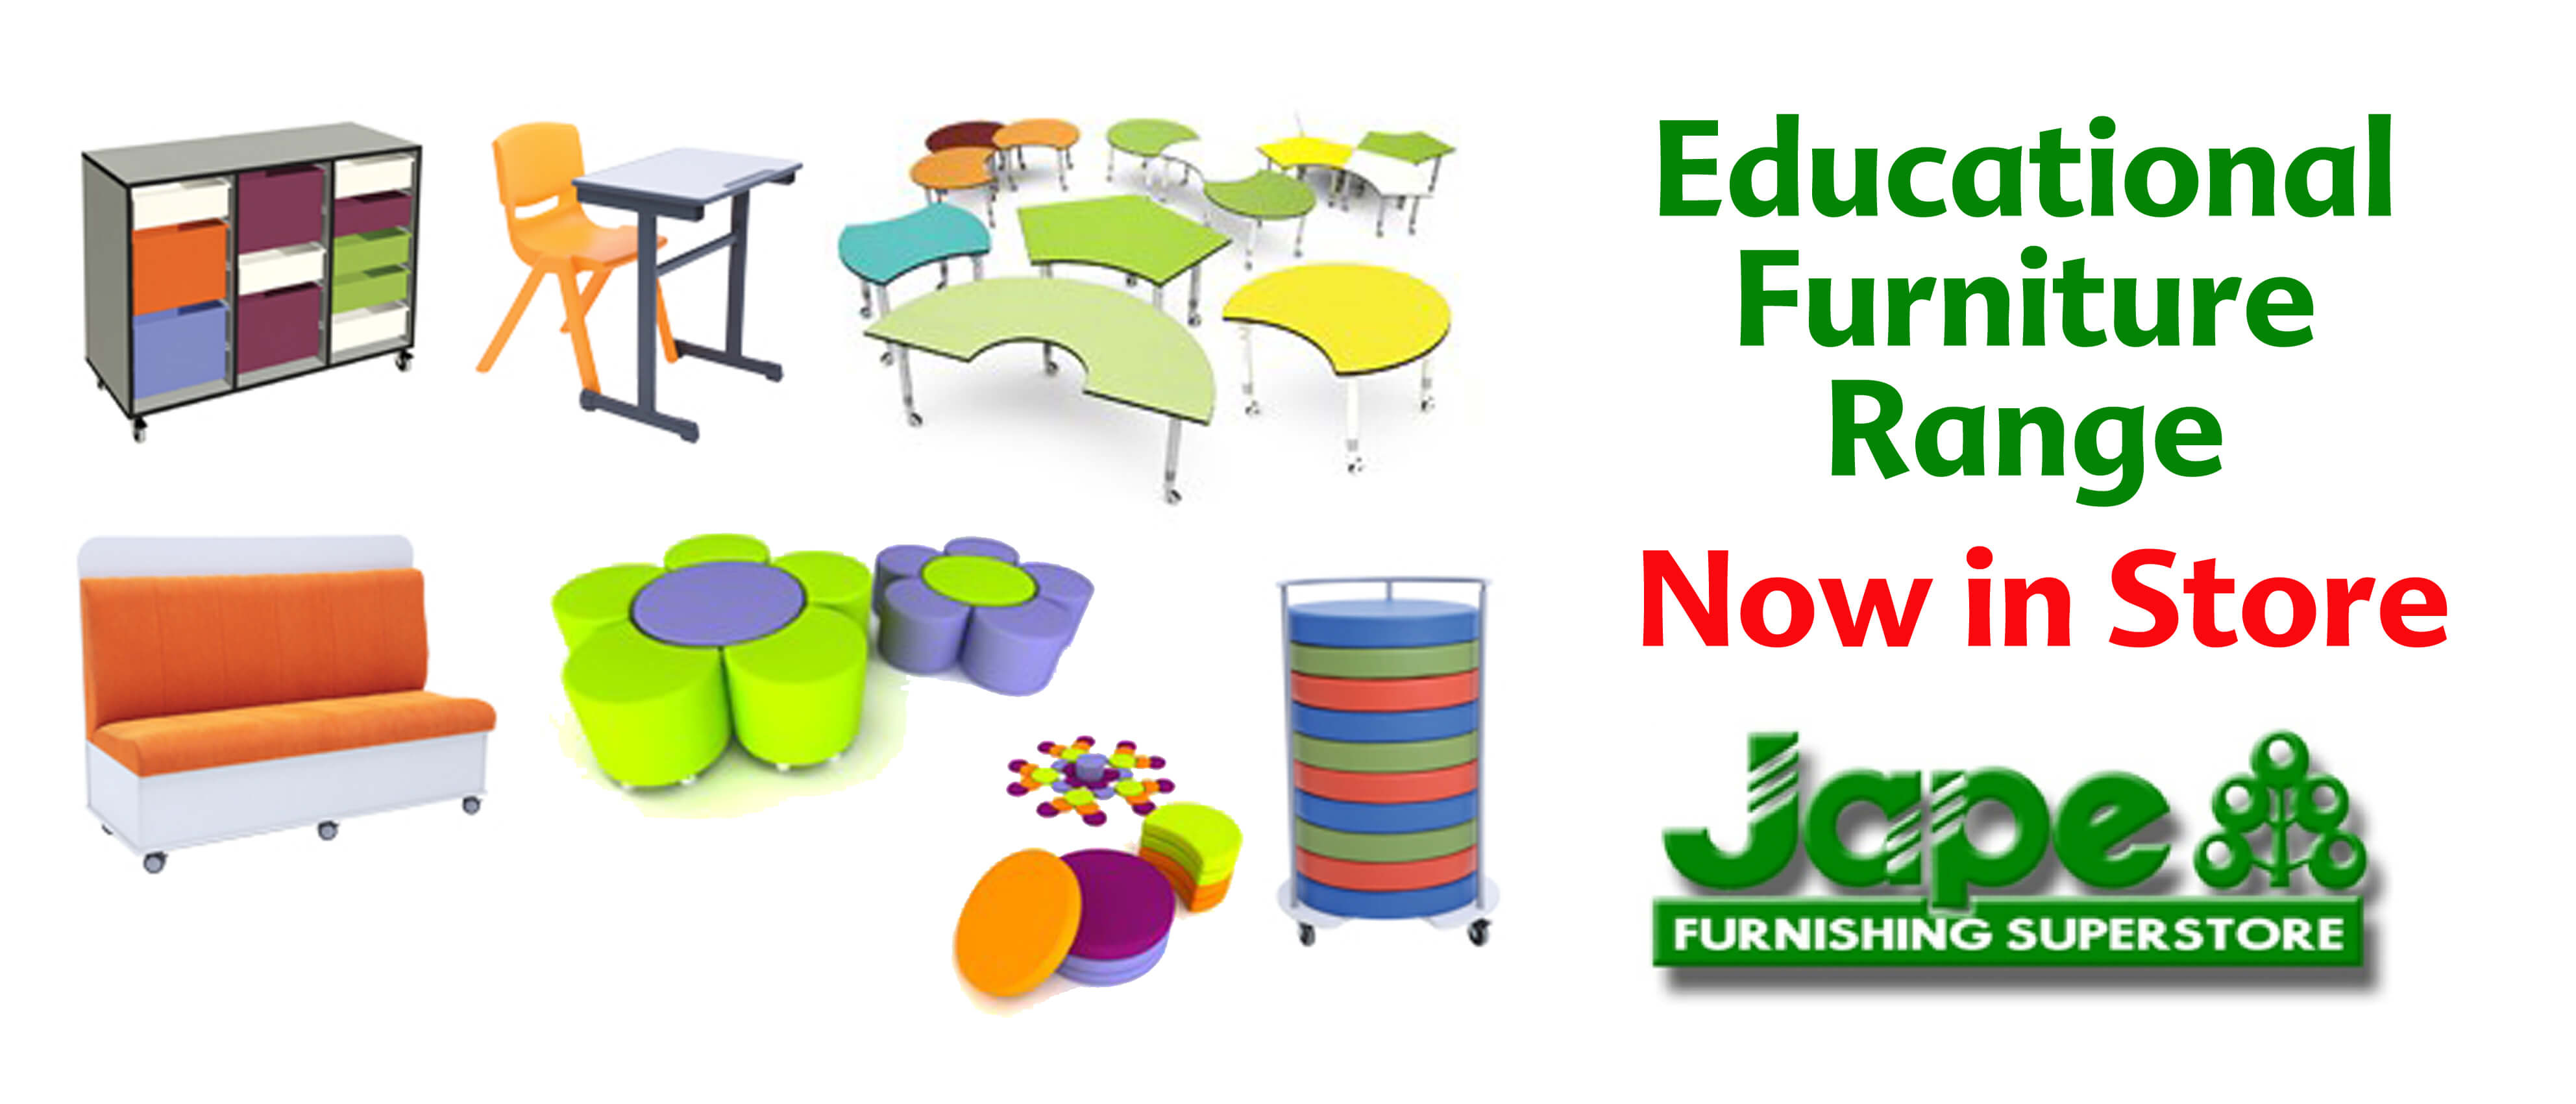 Educational Range Furniture